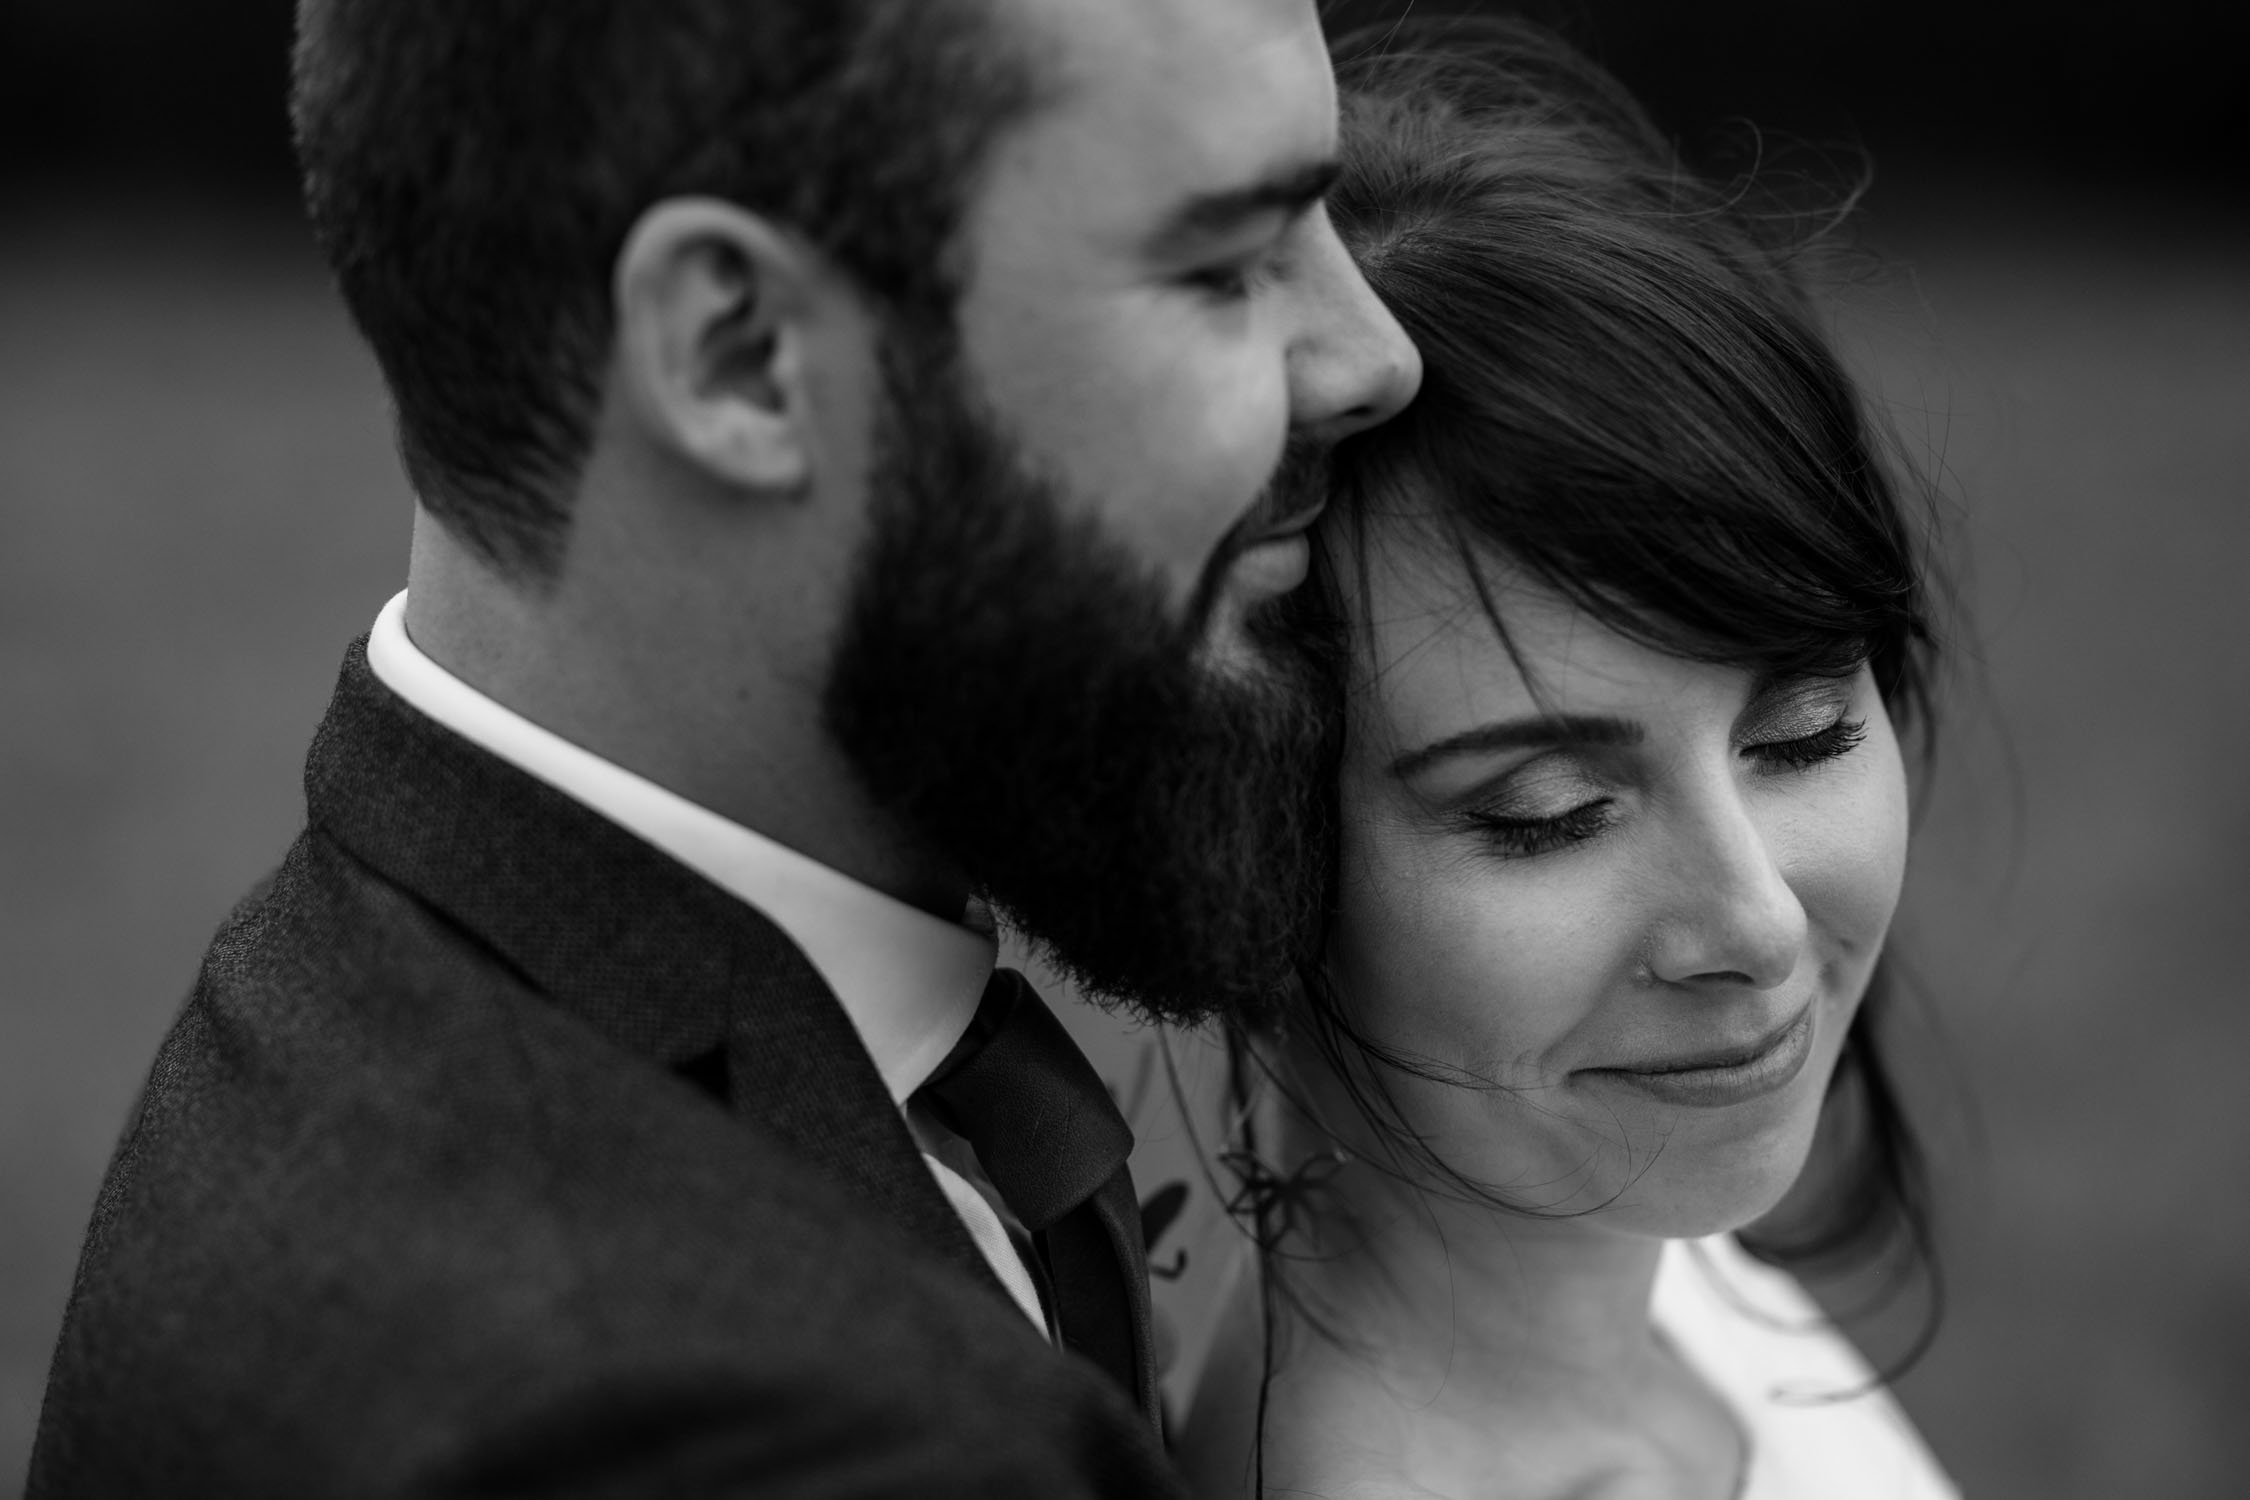 Honest moment shared by bride and groom captured by best Vancouver Wedding Photographer